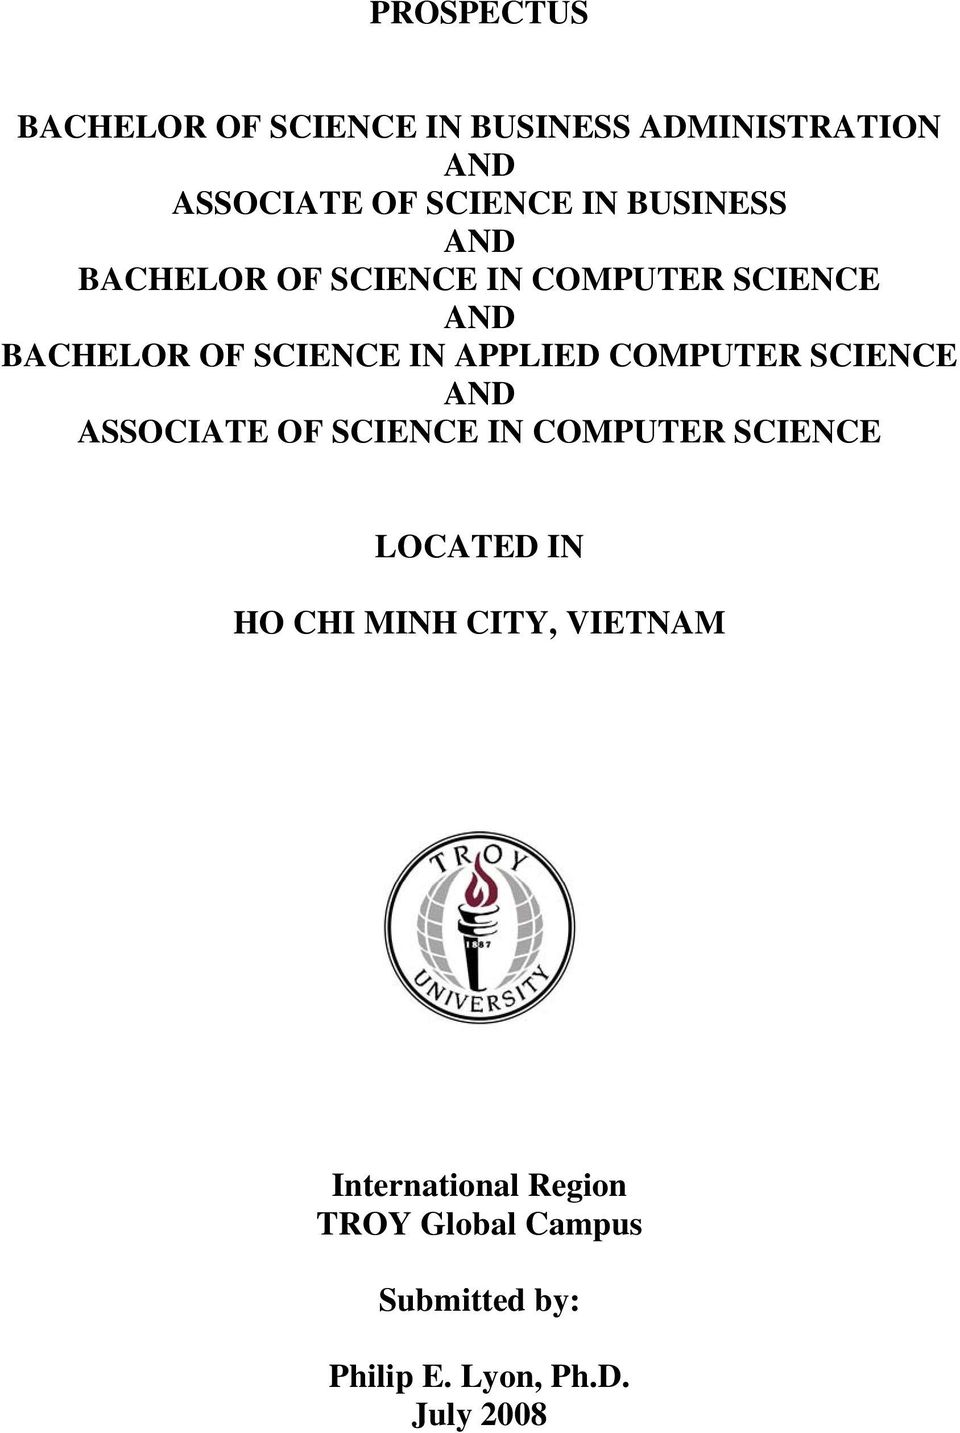 COMPUTER SCIENCE AND ASSOCIATE OF SCIENCE IN COMPUTER SCIENCE LOCATED IN HO CHI MINH